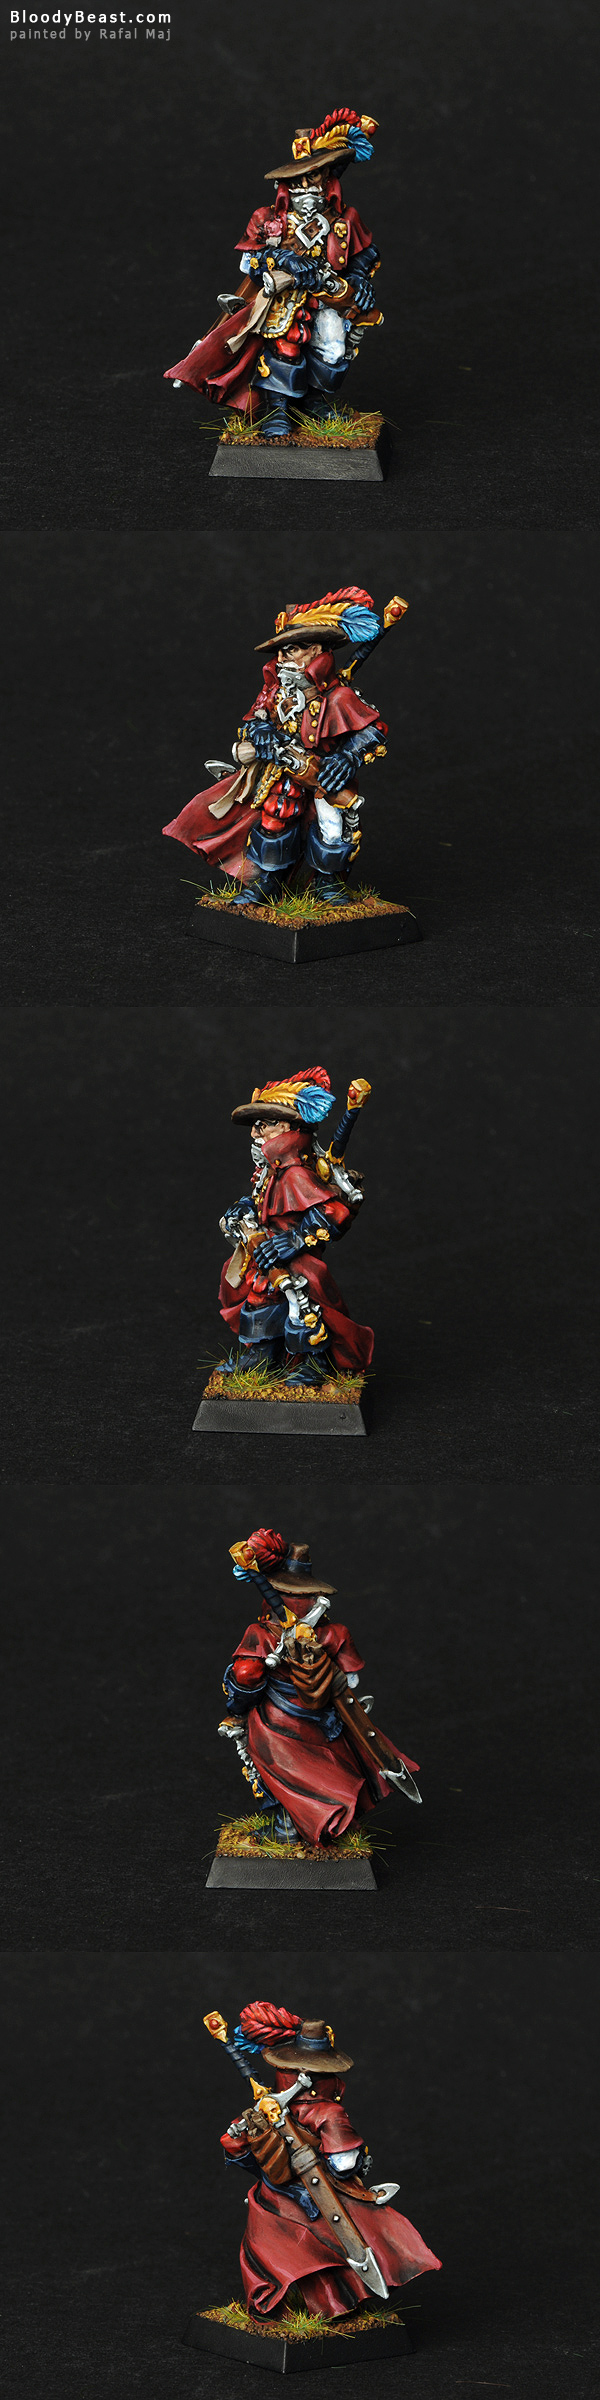 Empire Witch Hunter painted by Rafal Maj (BloodyBeast.com)